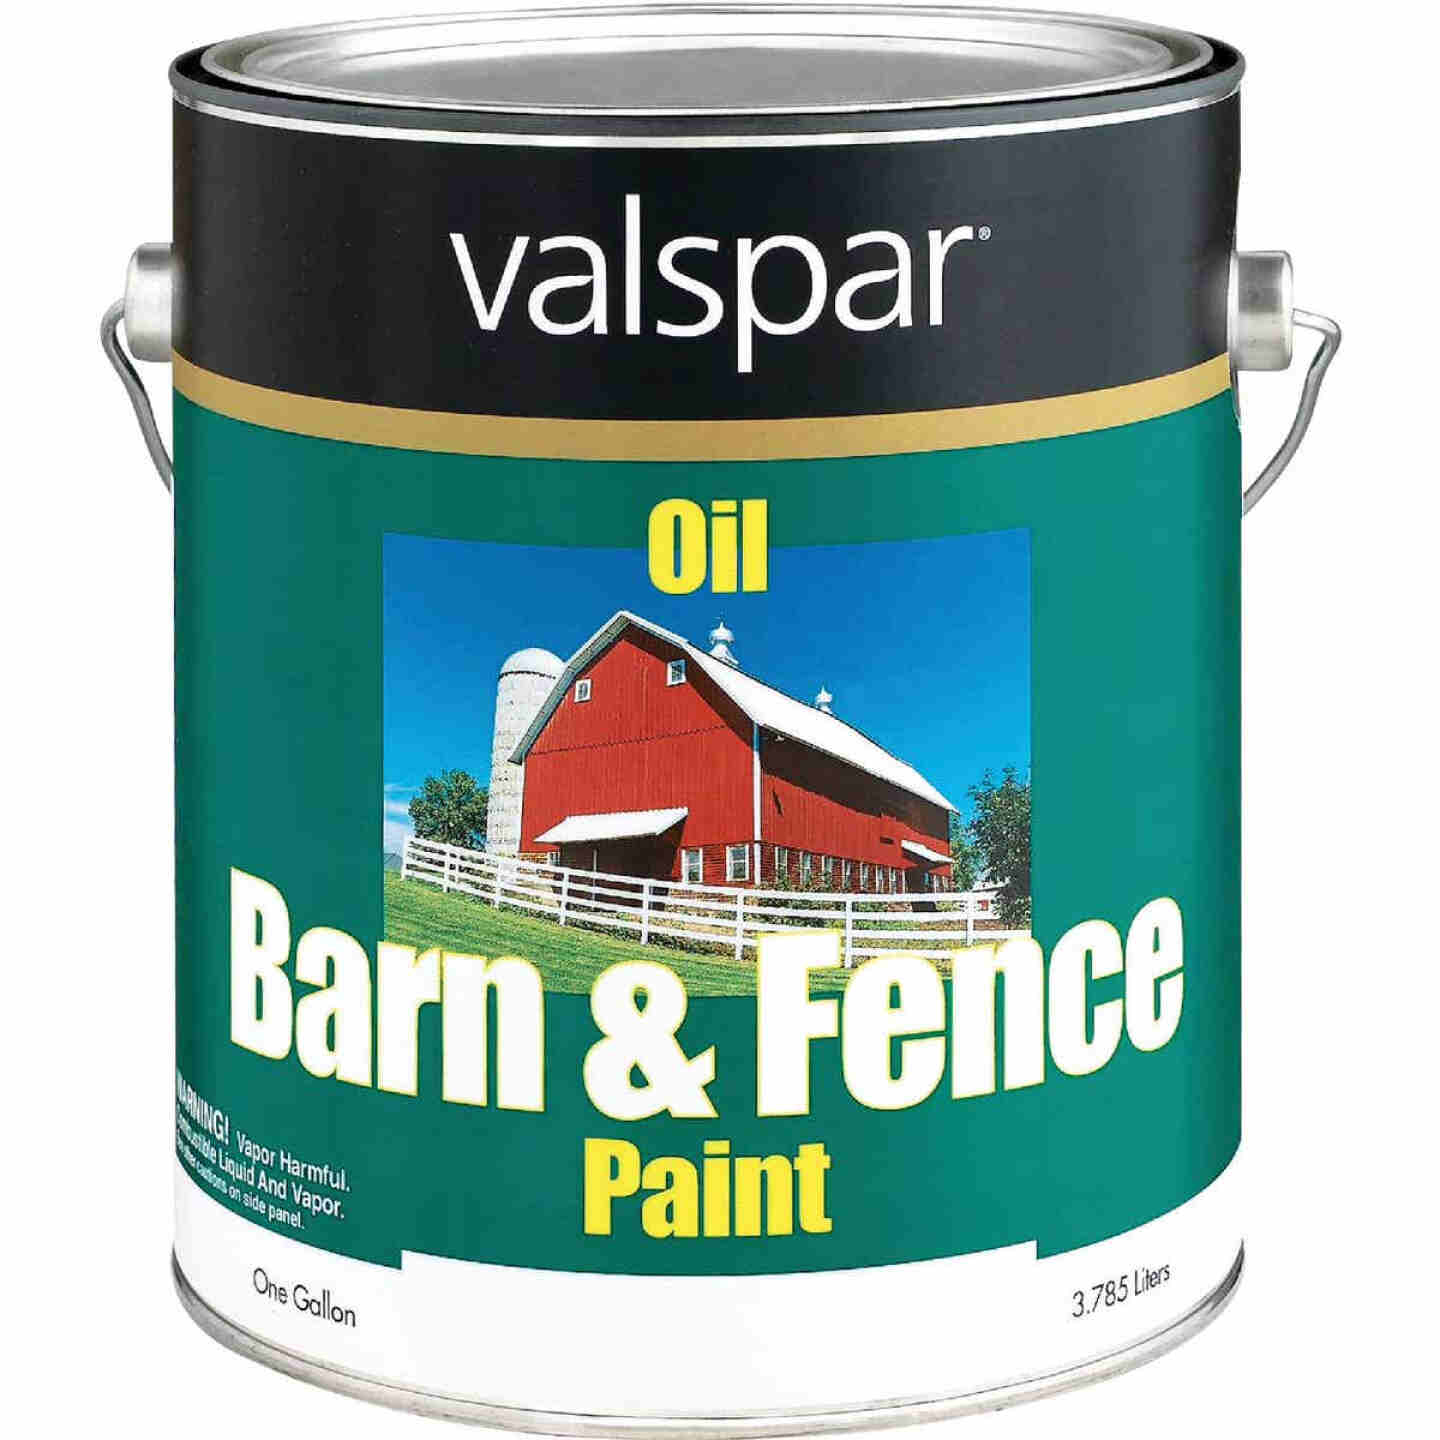 Valspar Oil Paint & Primer In One Low Sheen Barn & Fence Paint, White, 1 Gal. Image 1